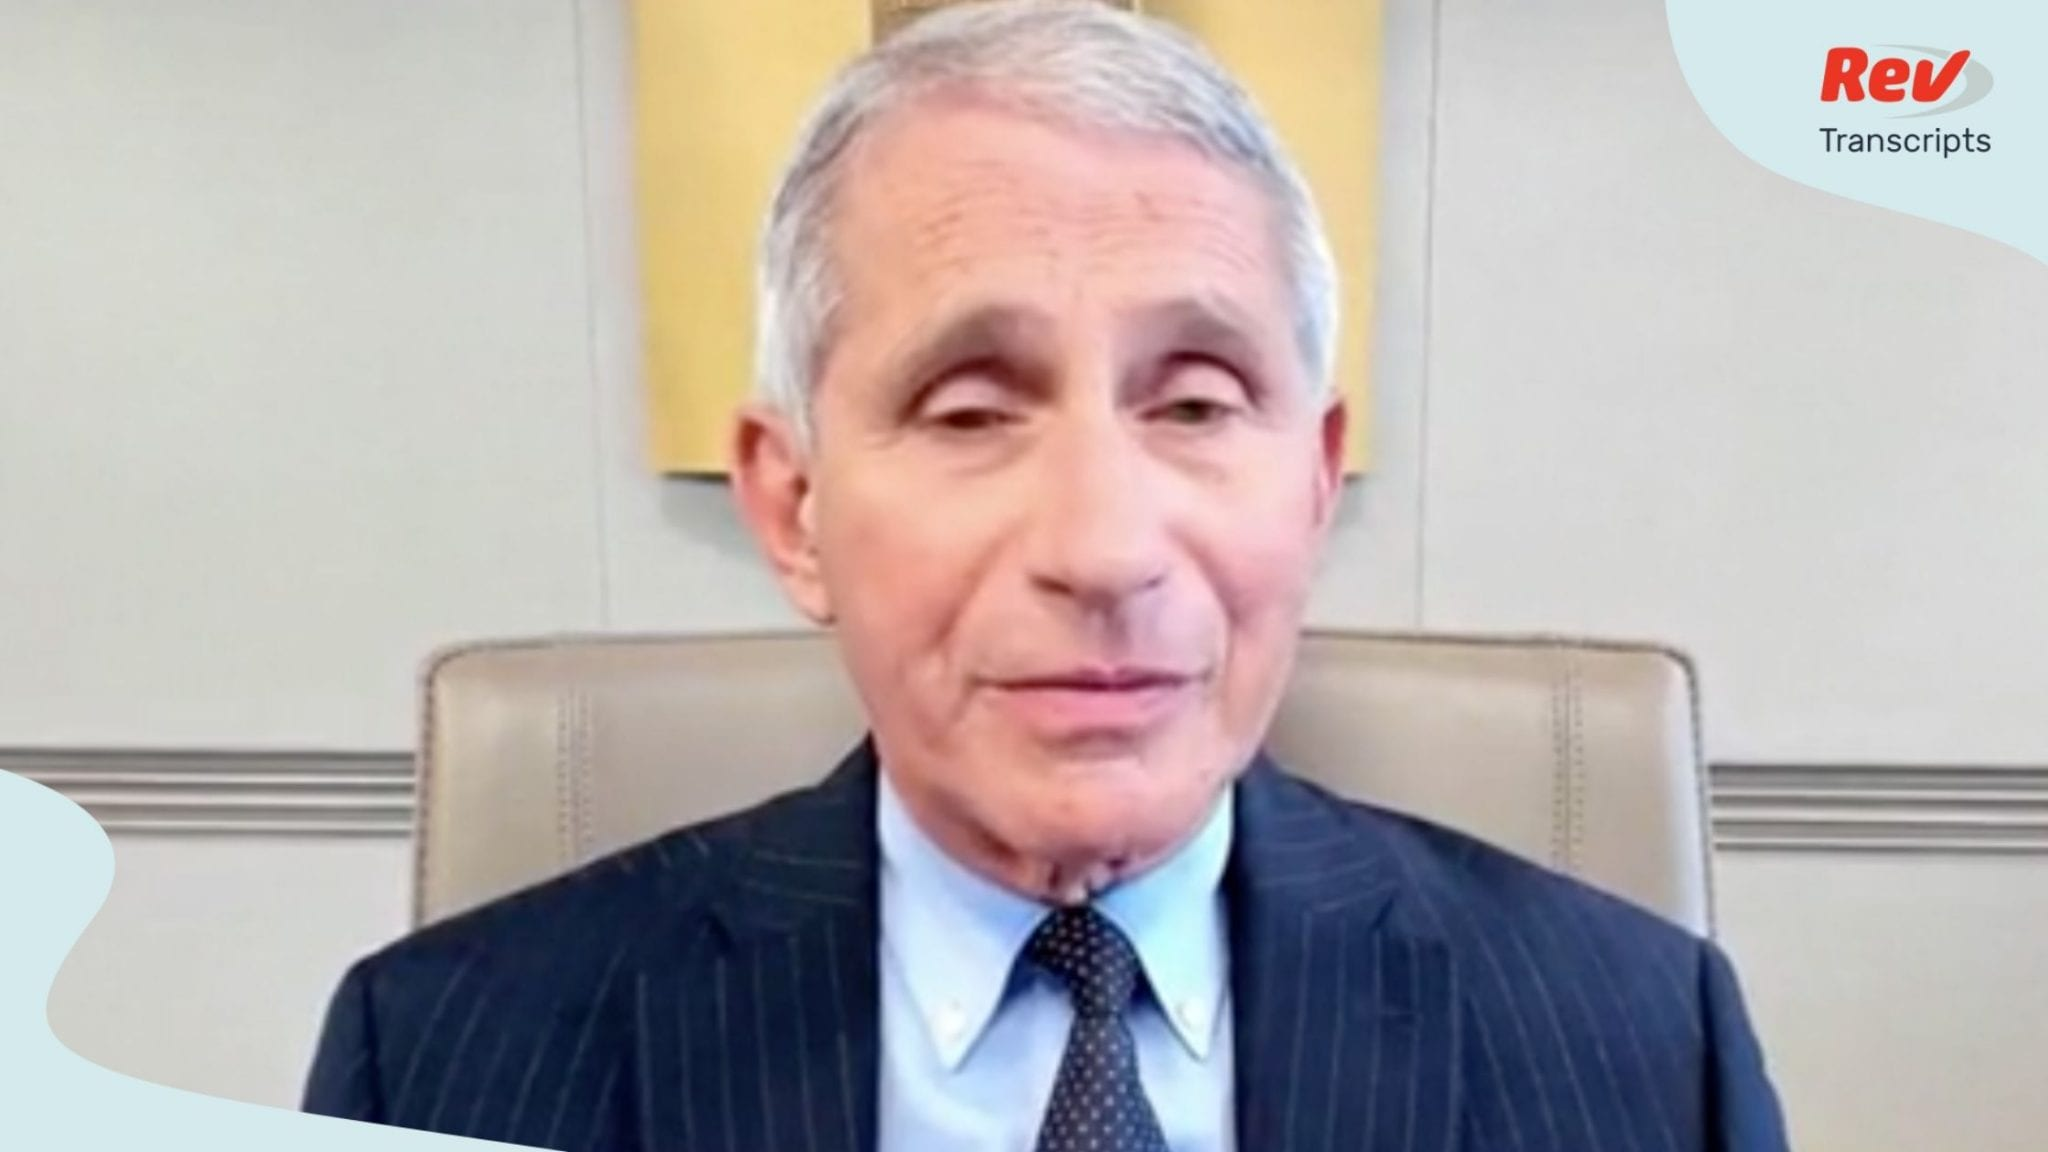 Dr. Fauci speaks about COVID-19 July 17